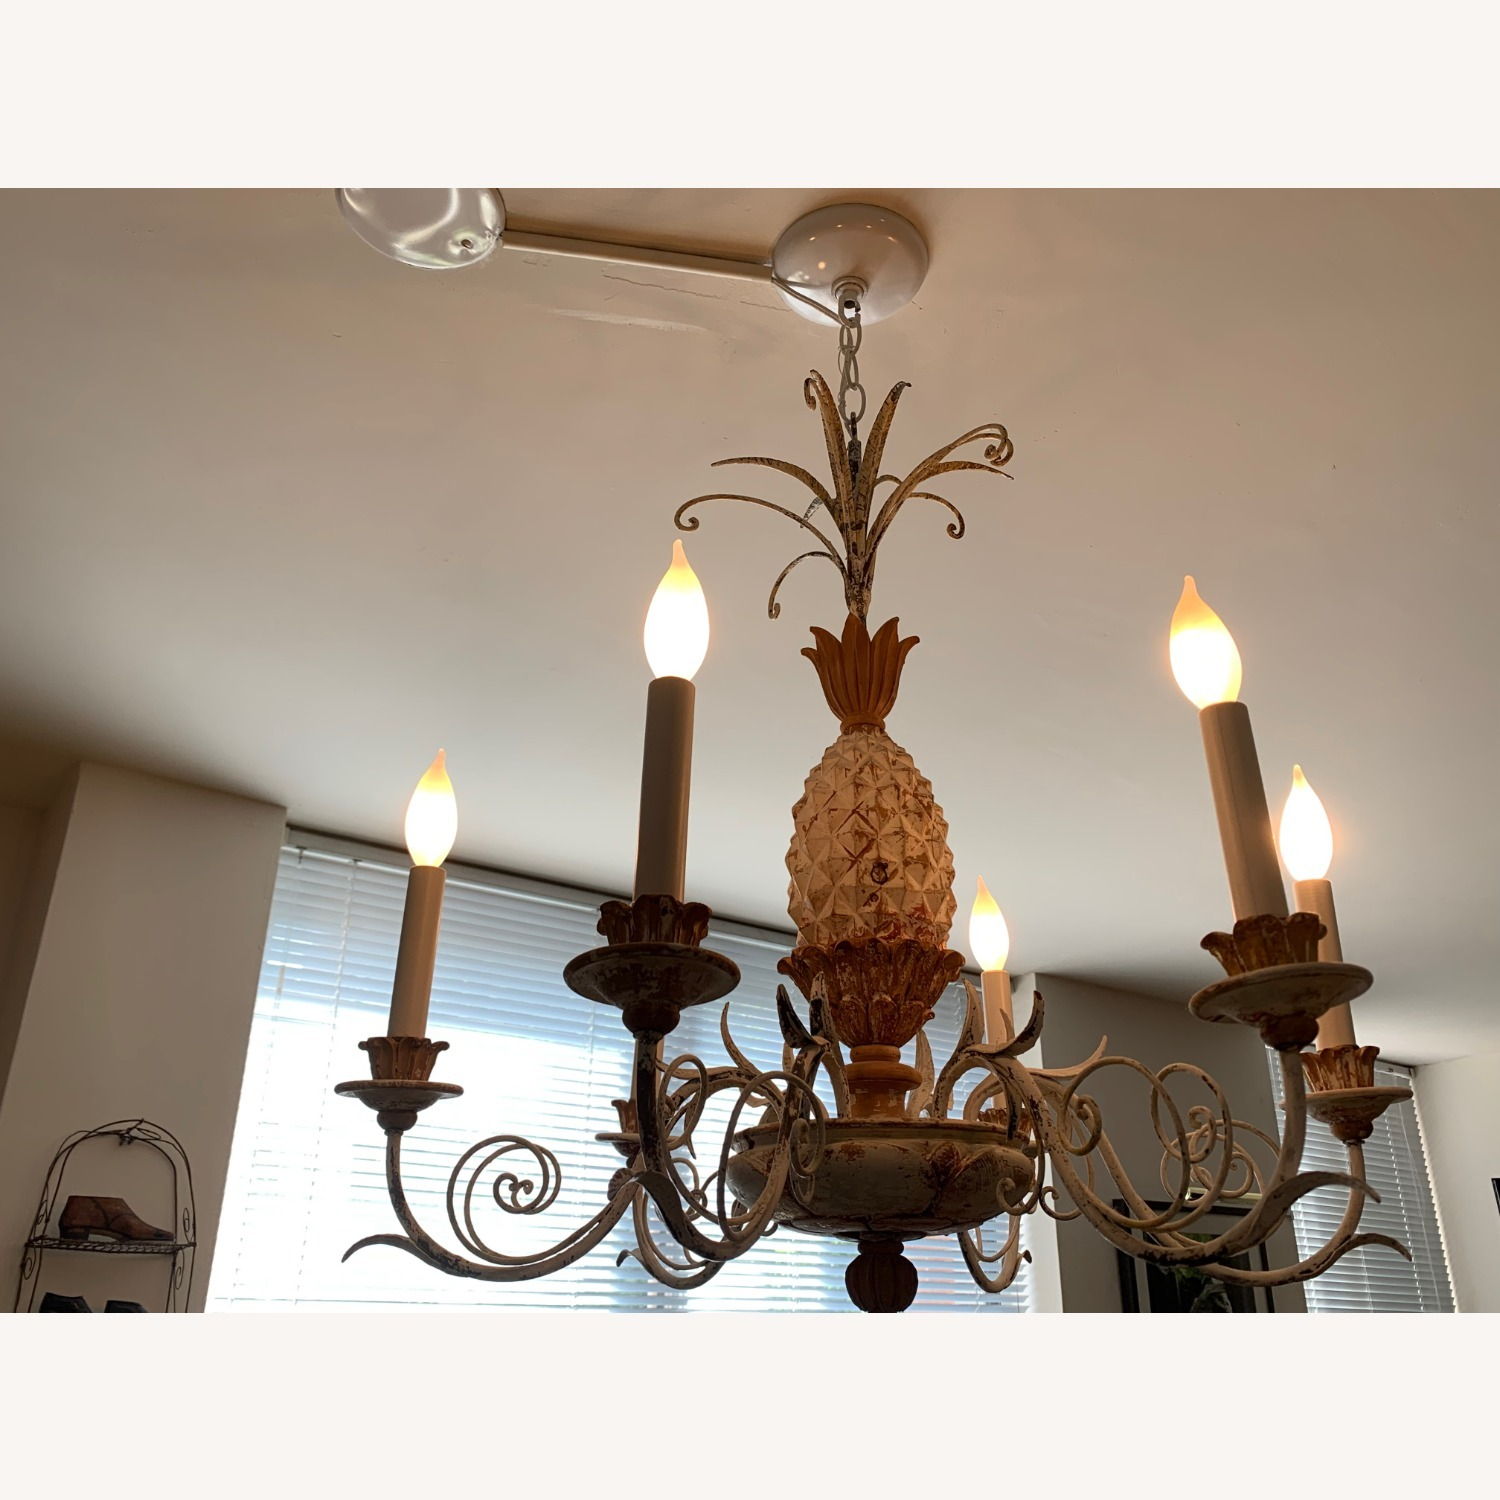 1920s White-Painted Wood and Metal Chandelier - image-2